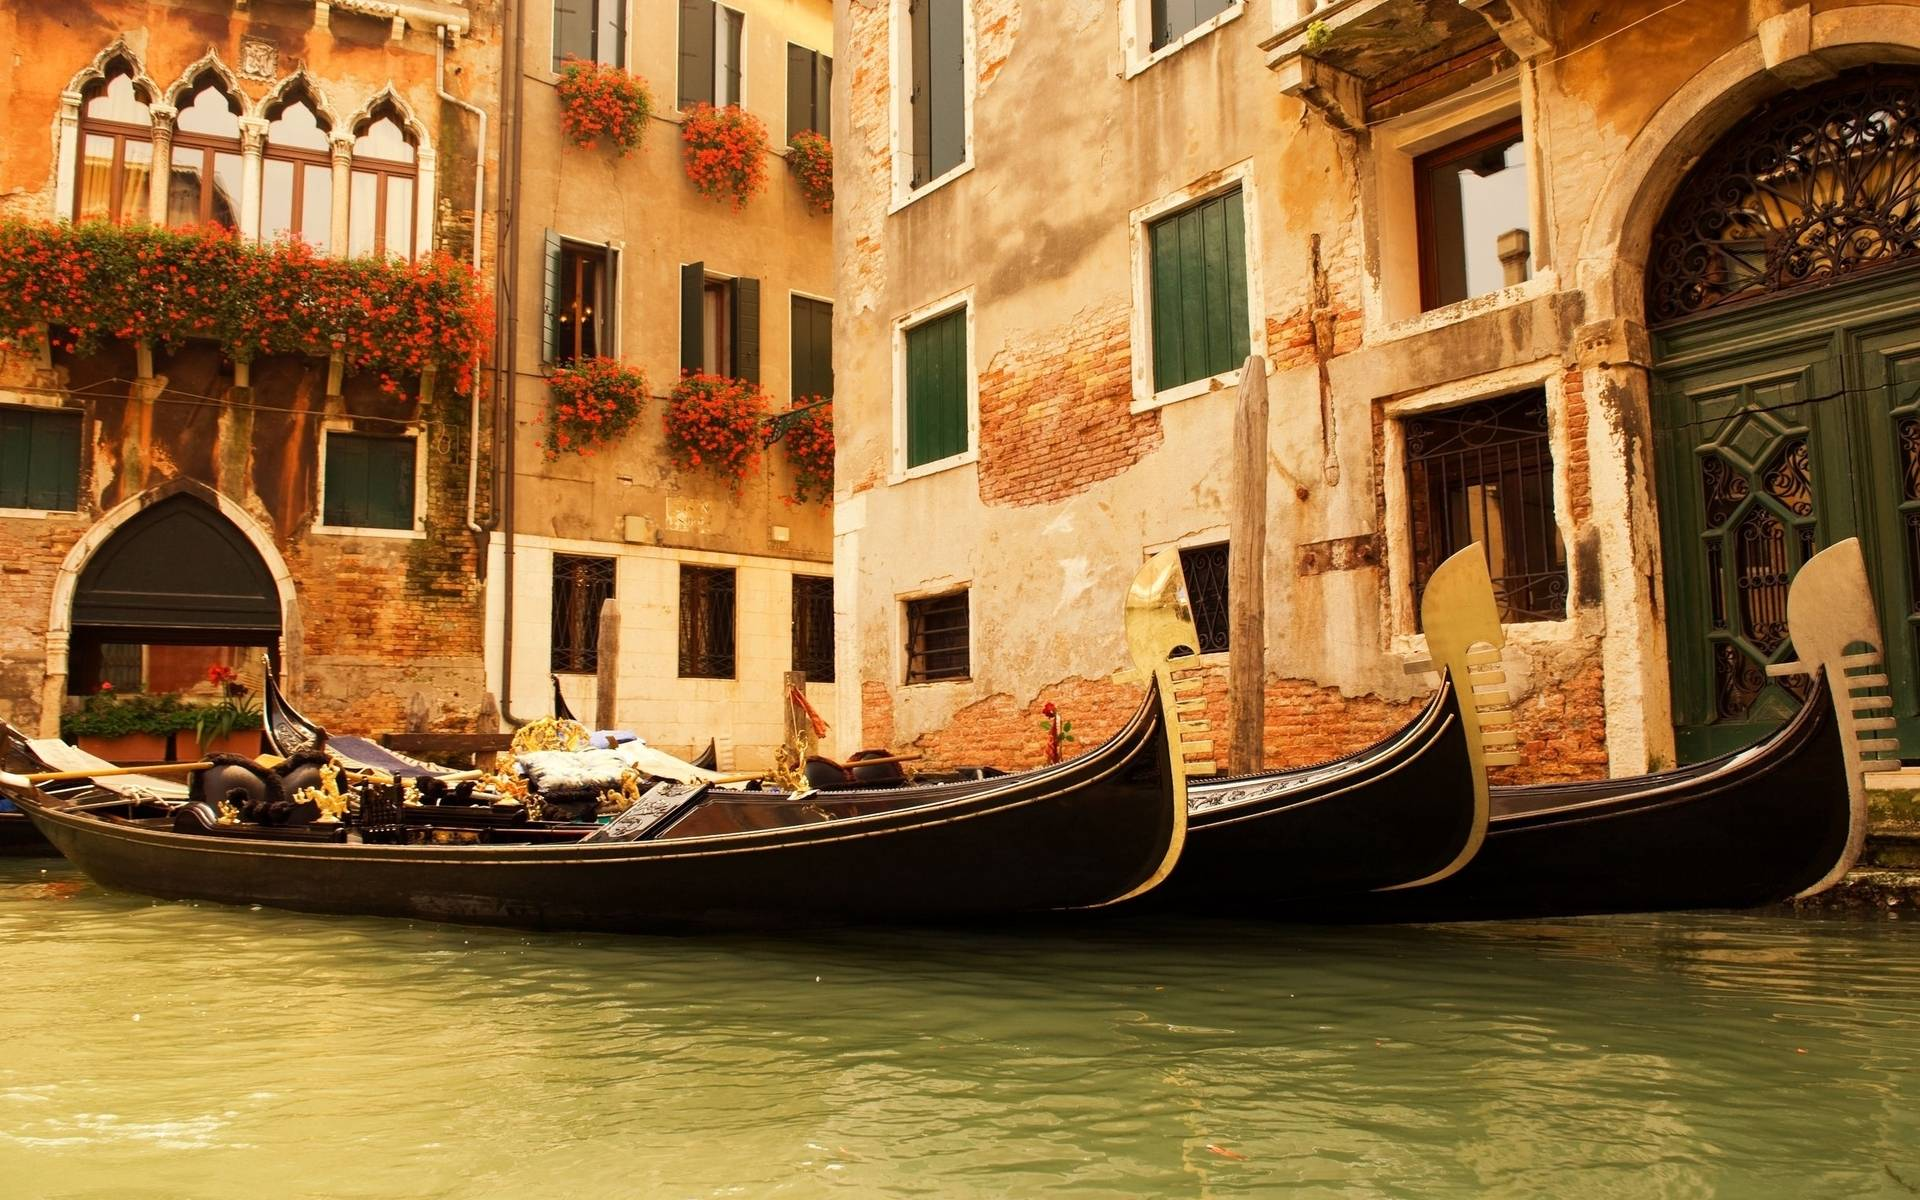 venice italy hd wallpapers hd wallpapers inn